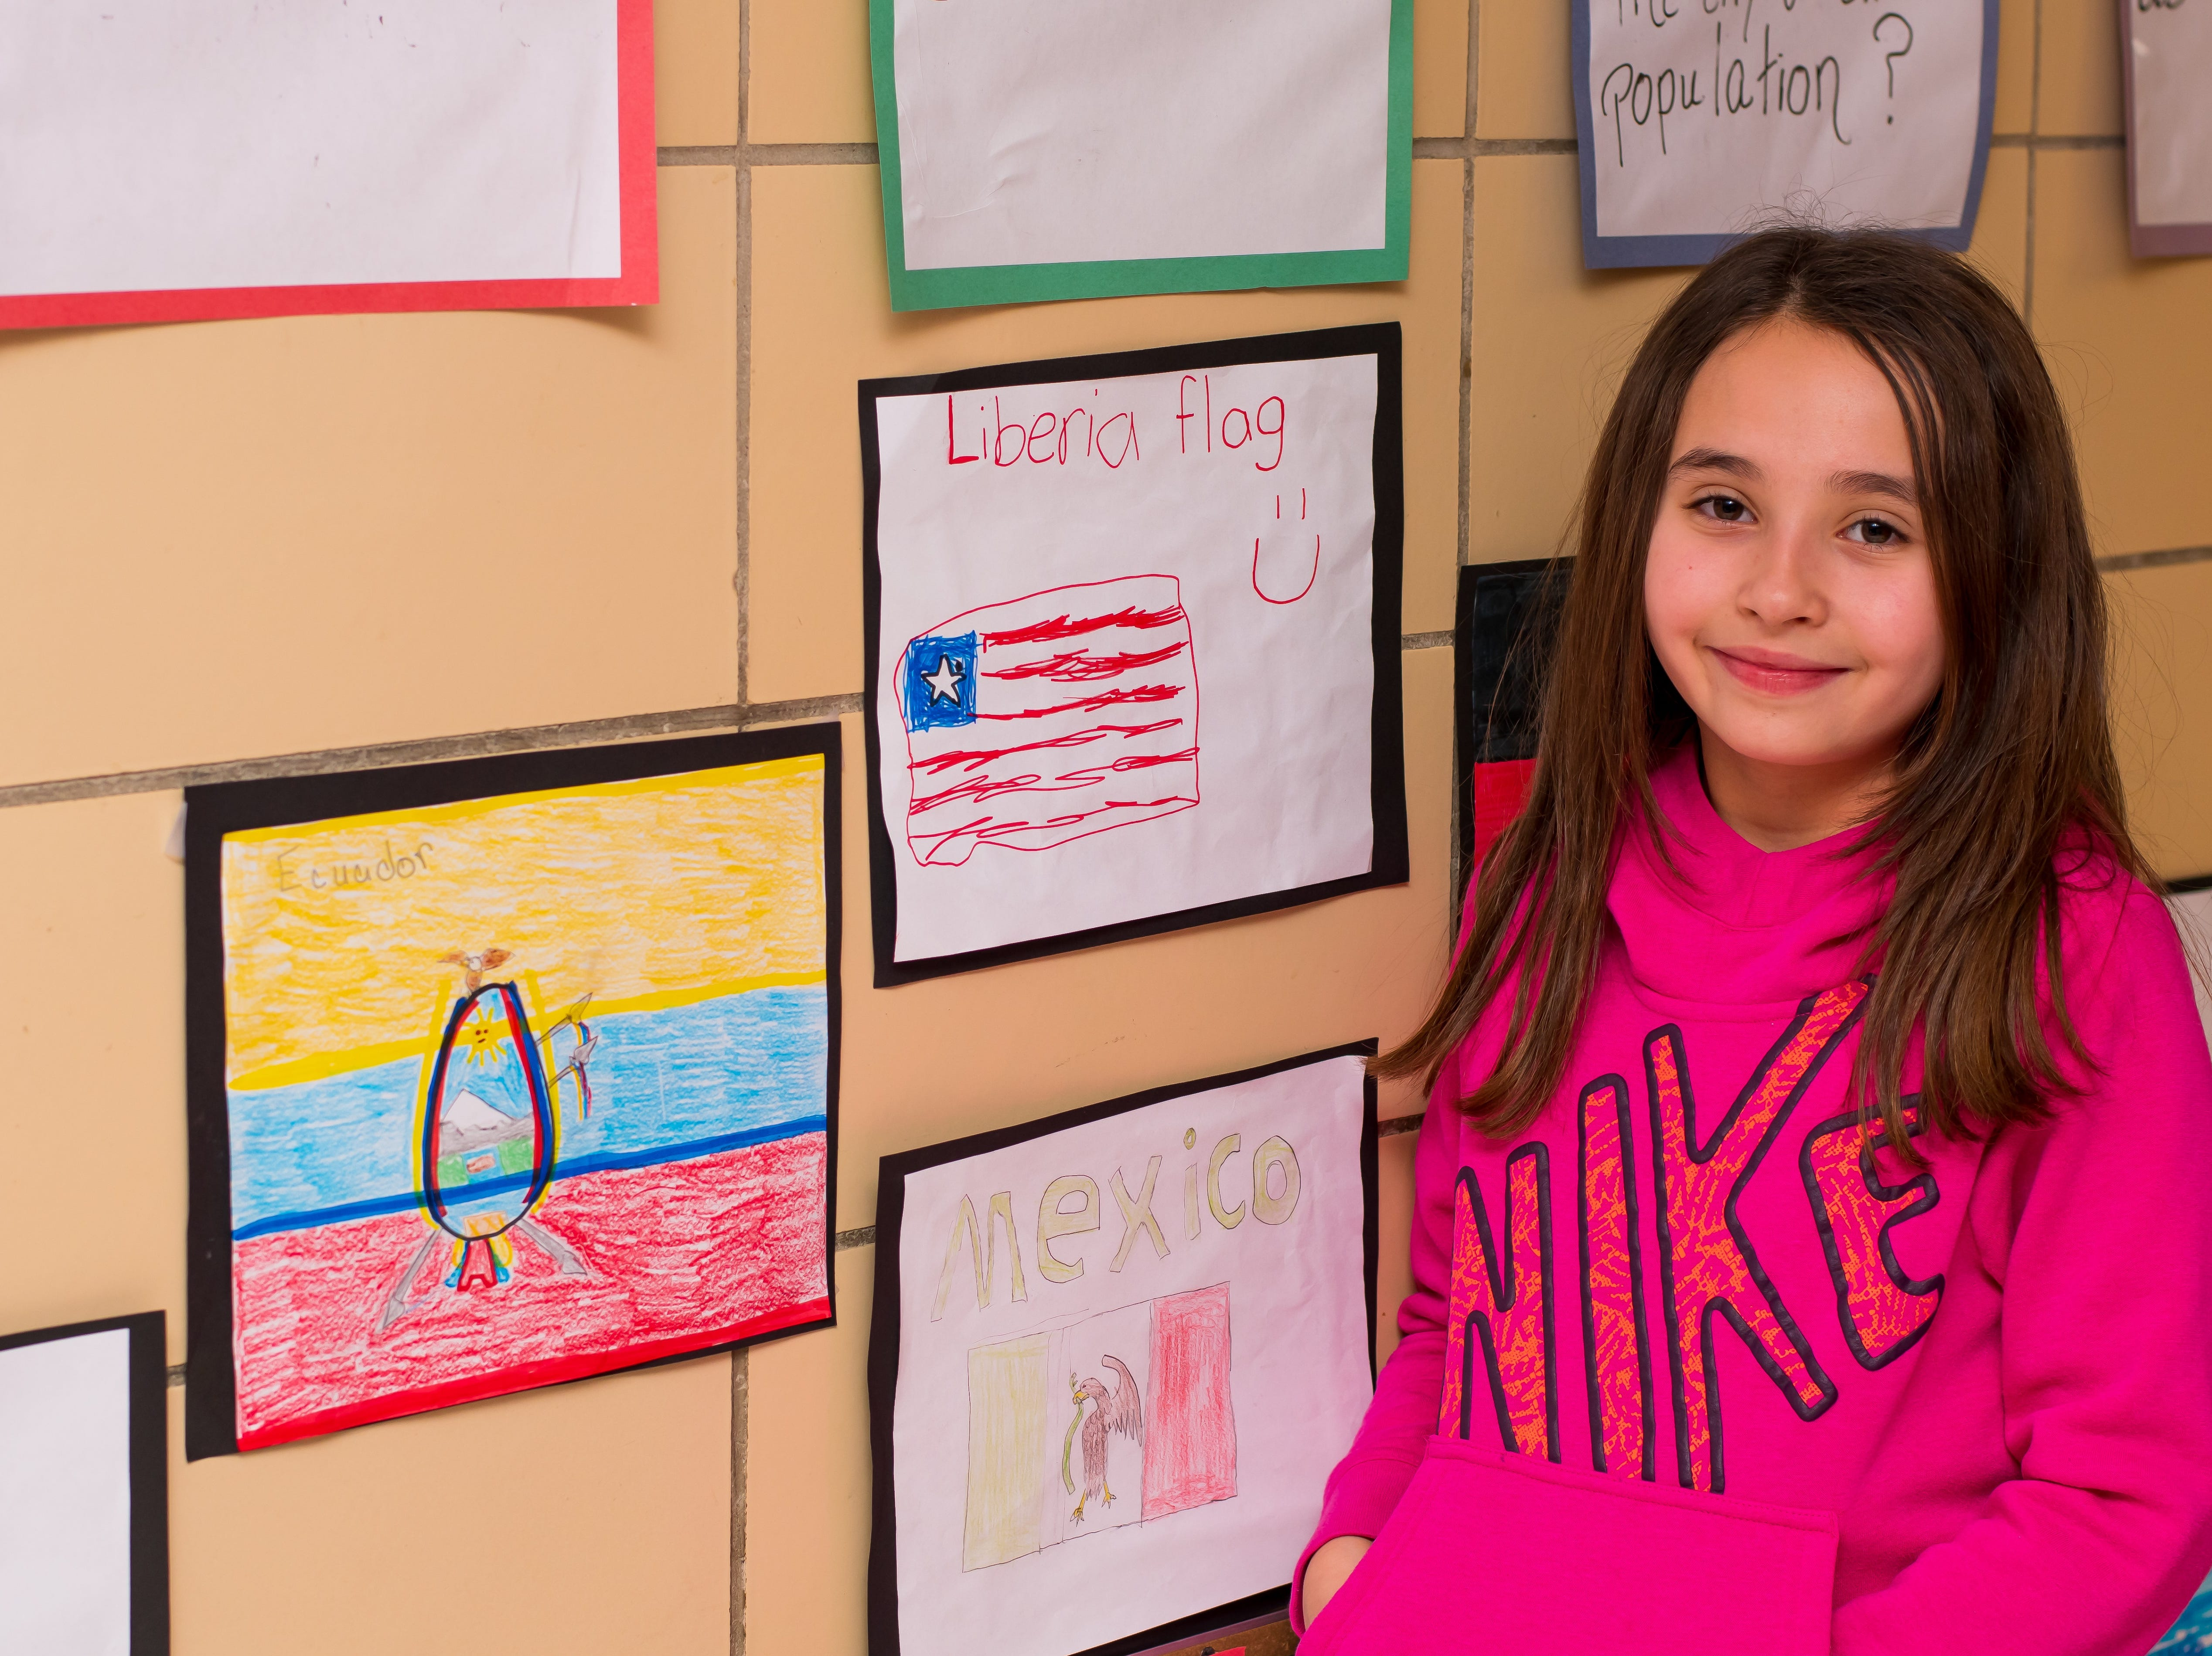 Leila Hidic, 9, of Clive shares her work at the Celebrate Crestview event on Tuesday, Dec. 11, 2018 at Crestview School of Inquiry in Clive. Students learned the history of immigration in Clive and the impact it has had on Crestview.